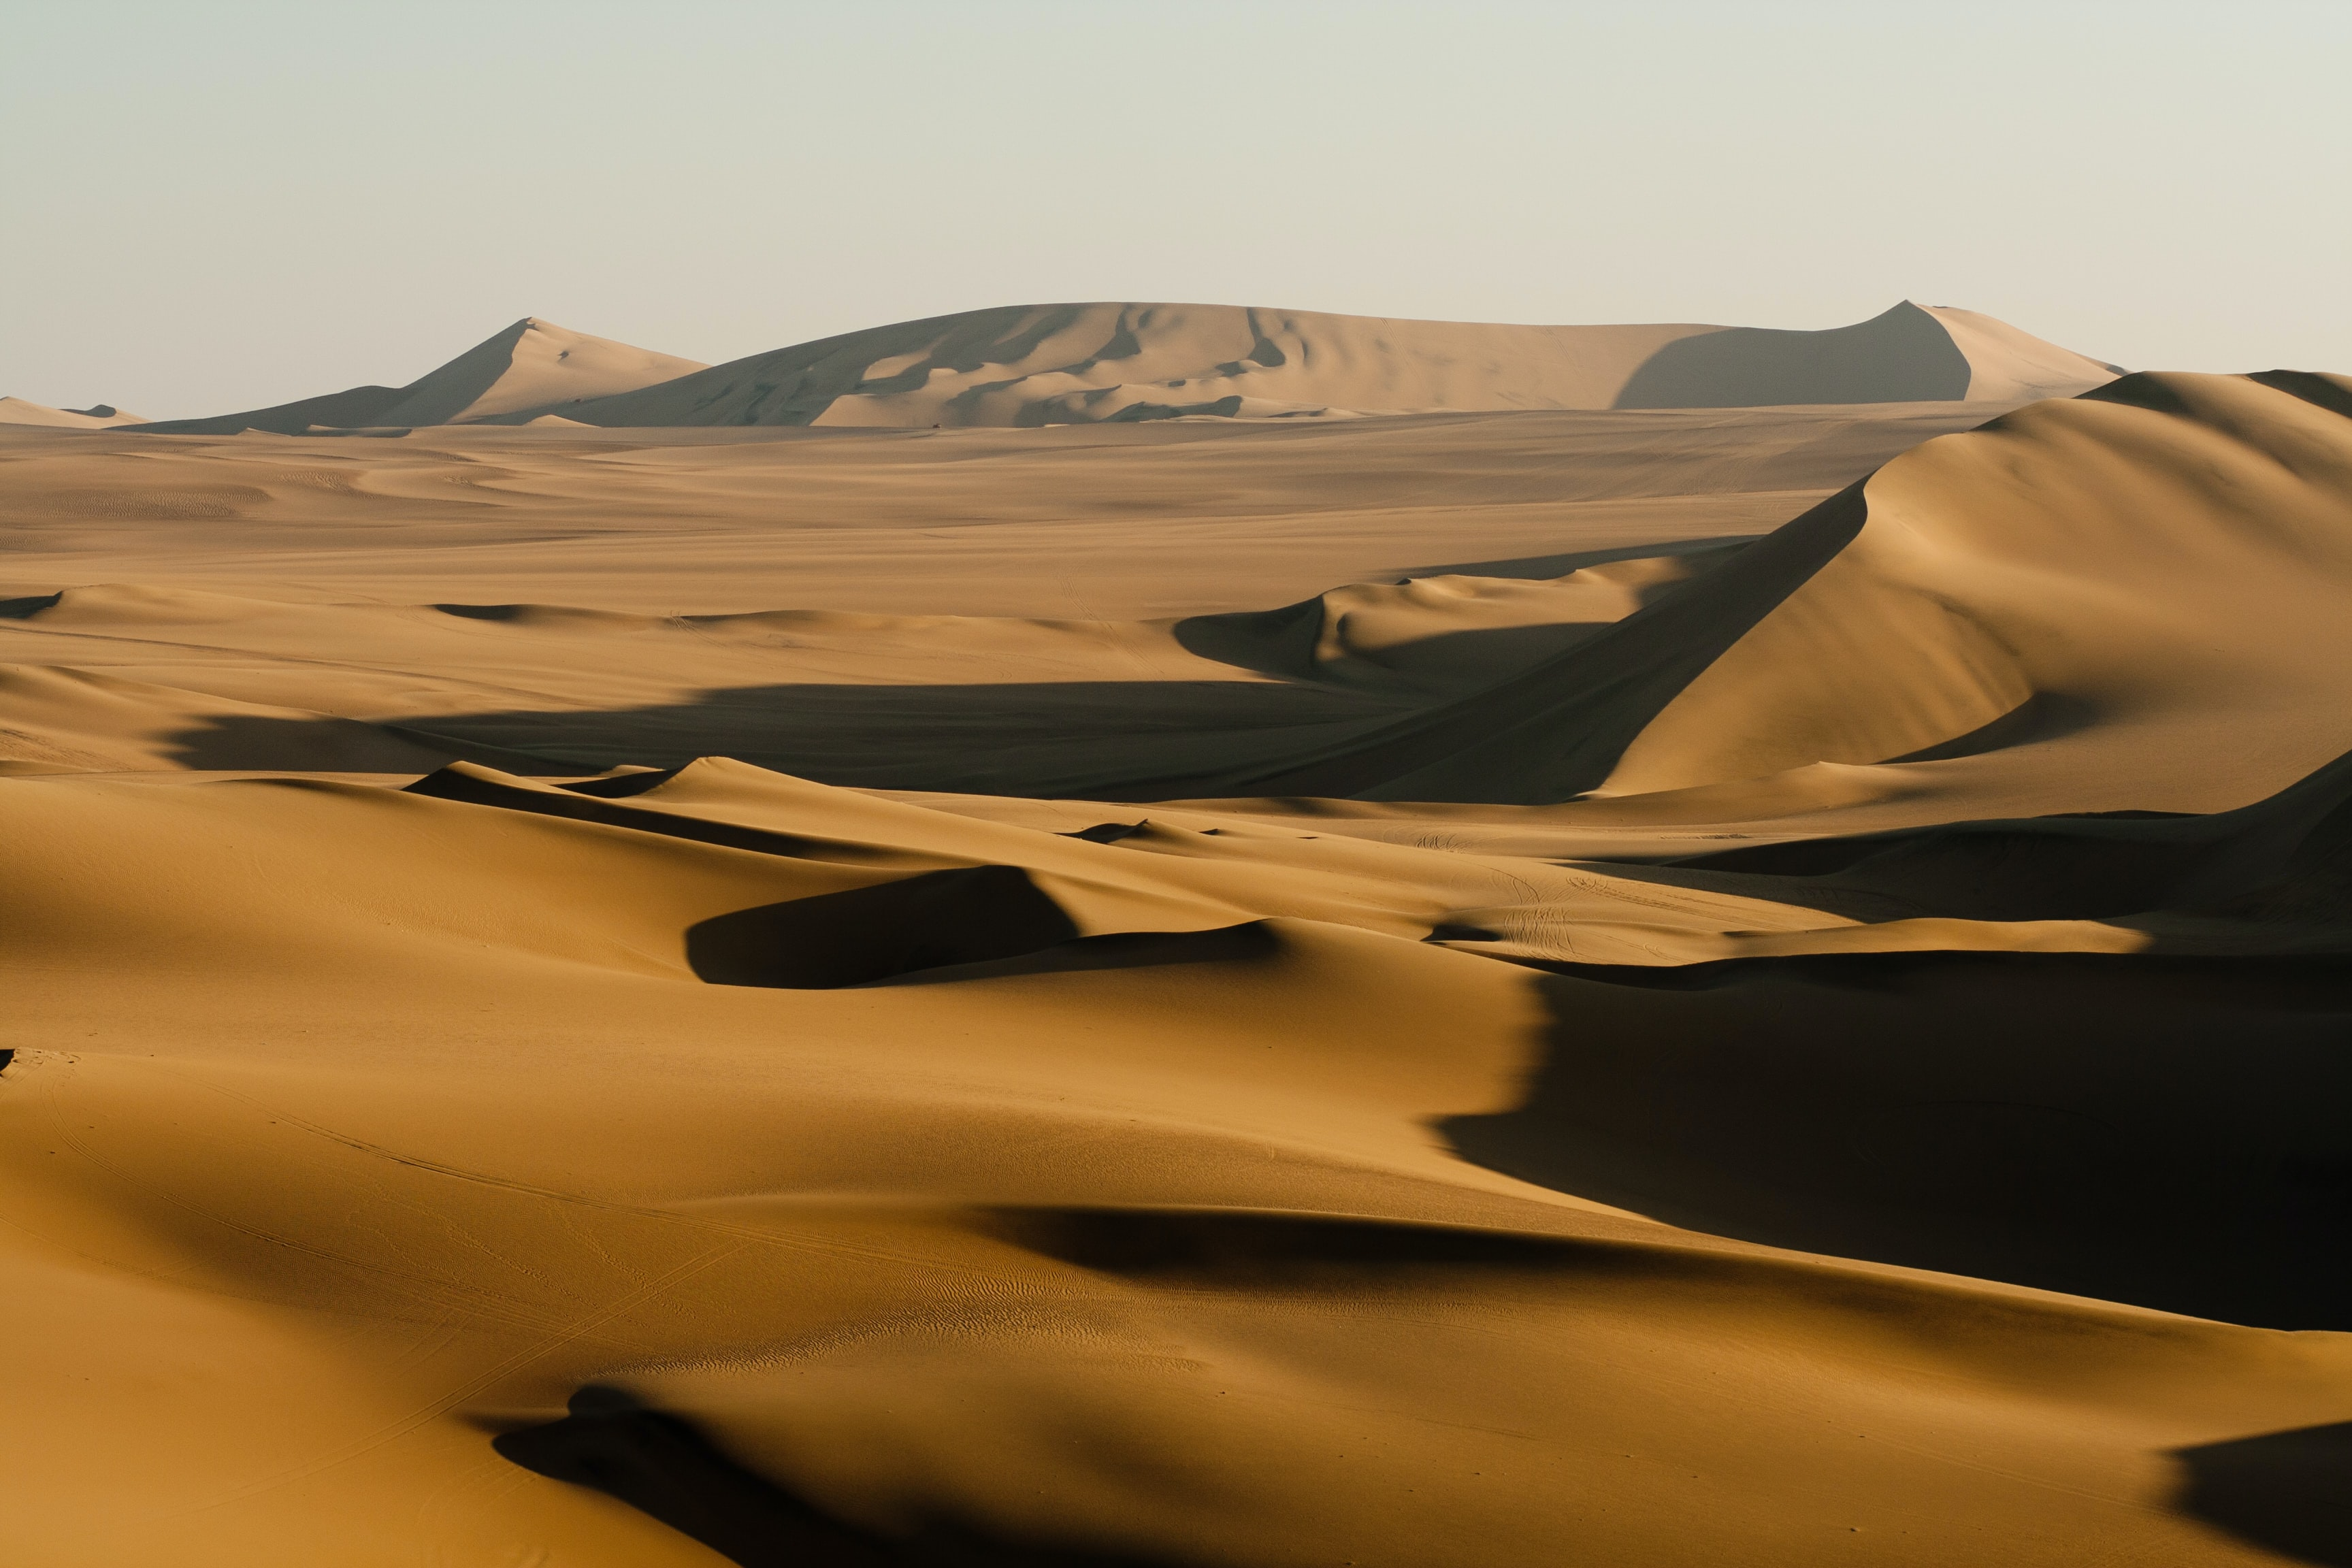 Shadows on rolling sand dunes in the desert of Huacachina